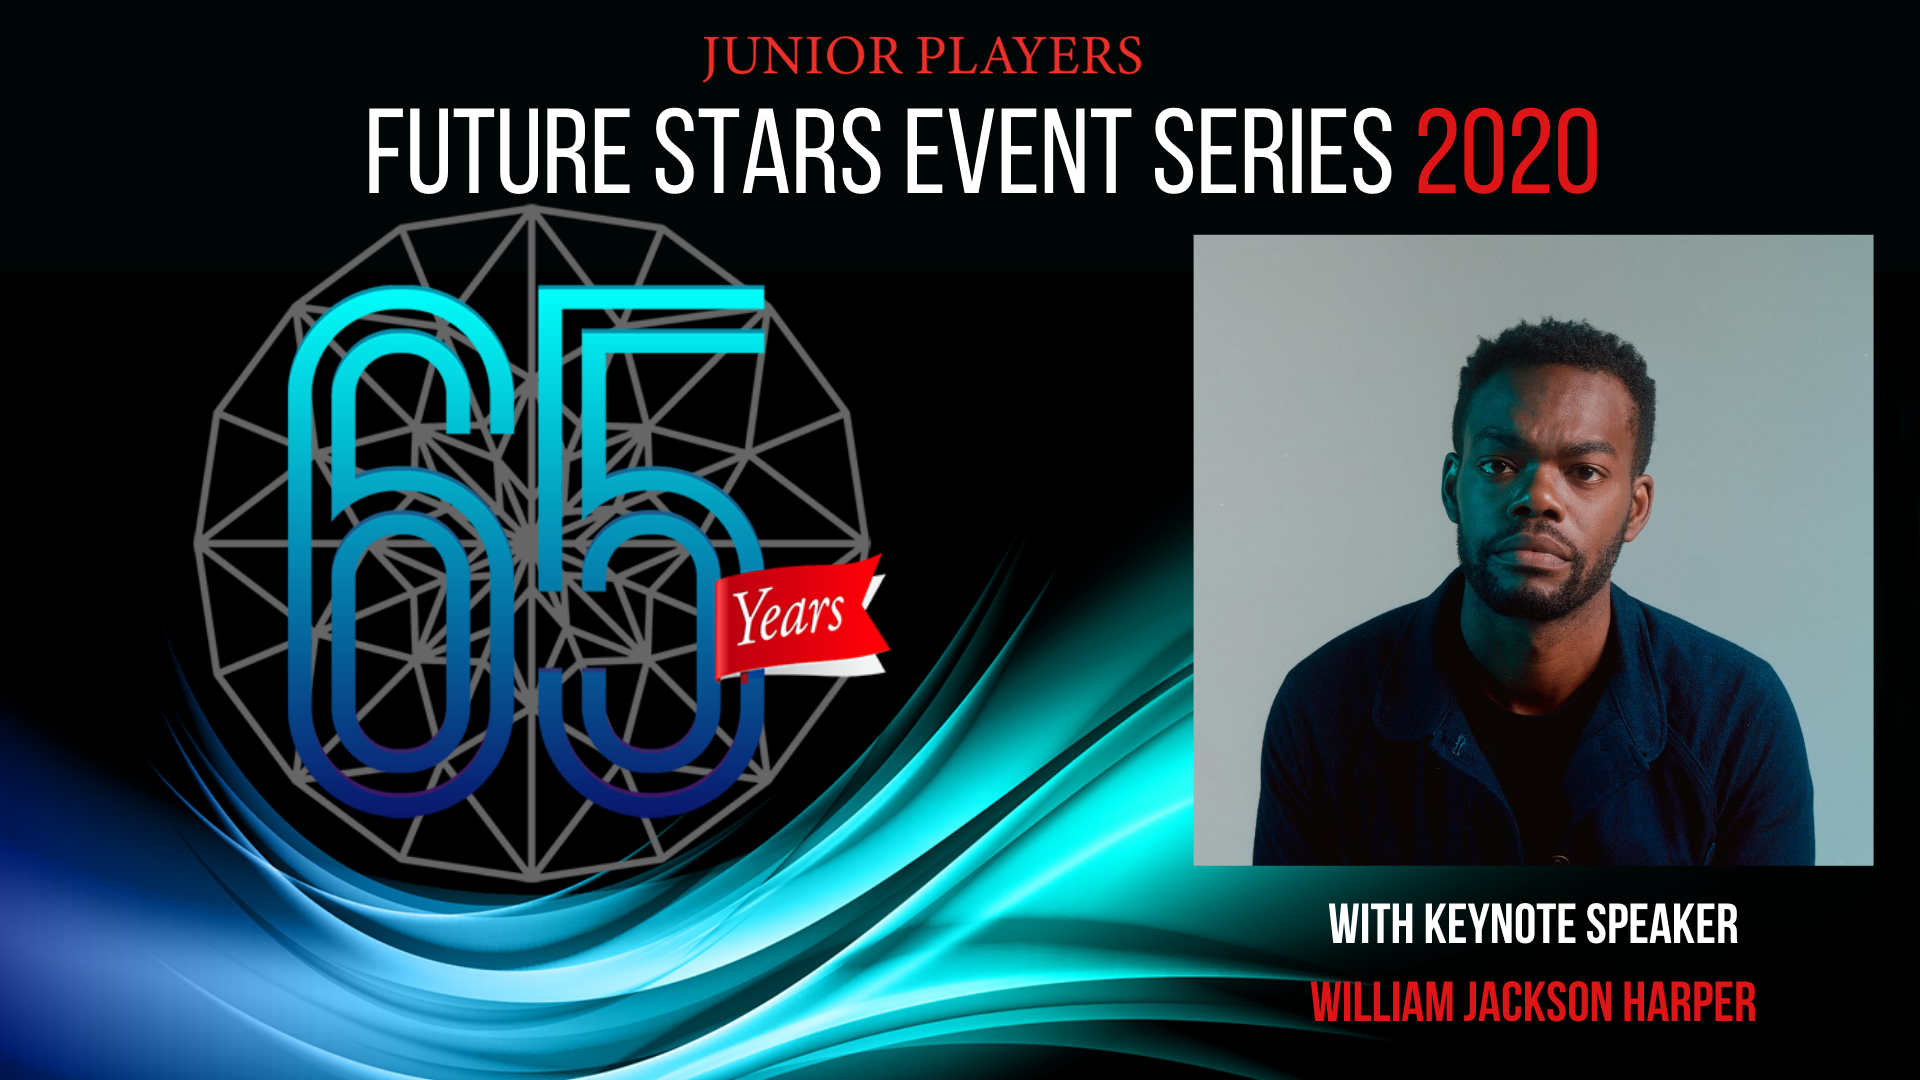 Future Stars Event Series Featuring Keynote Speaker William Jackson Harper